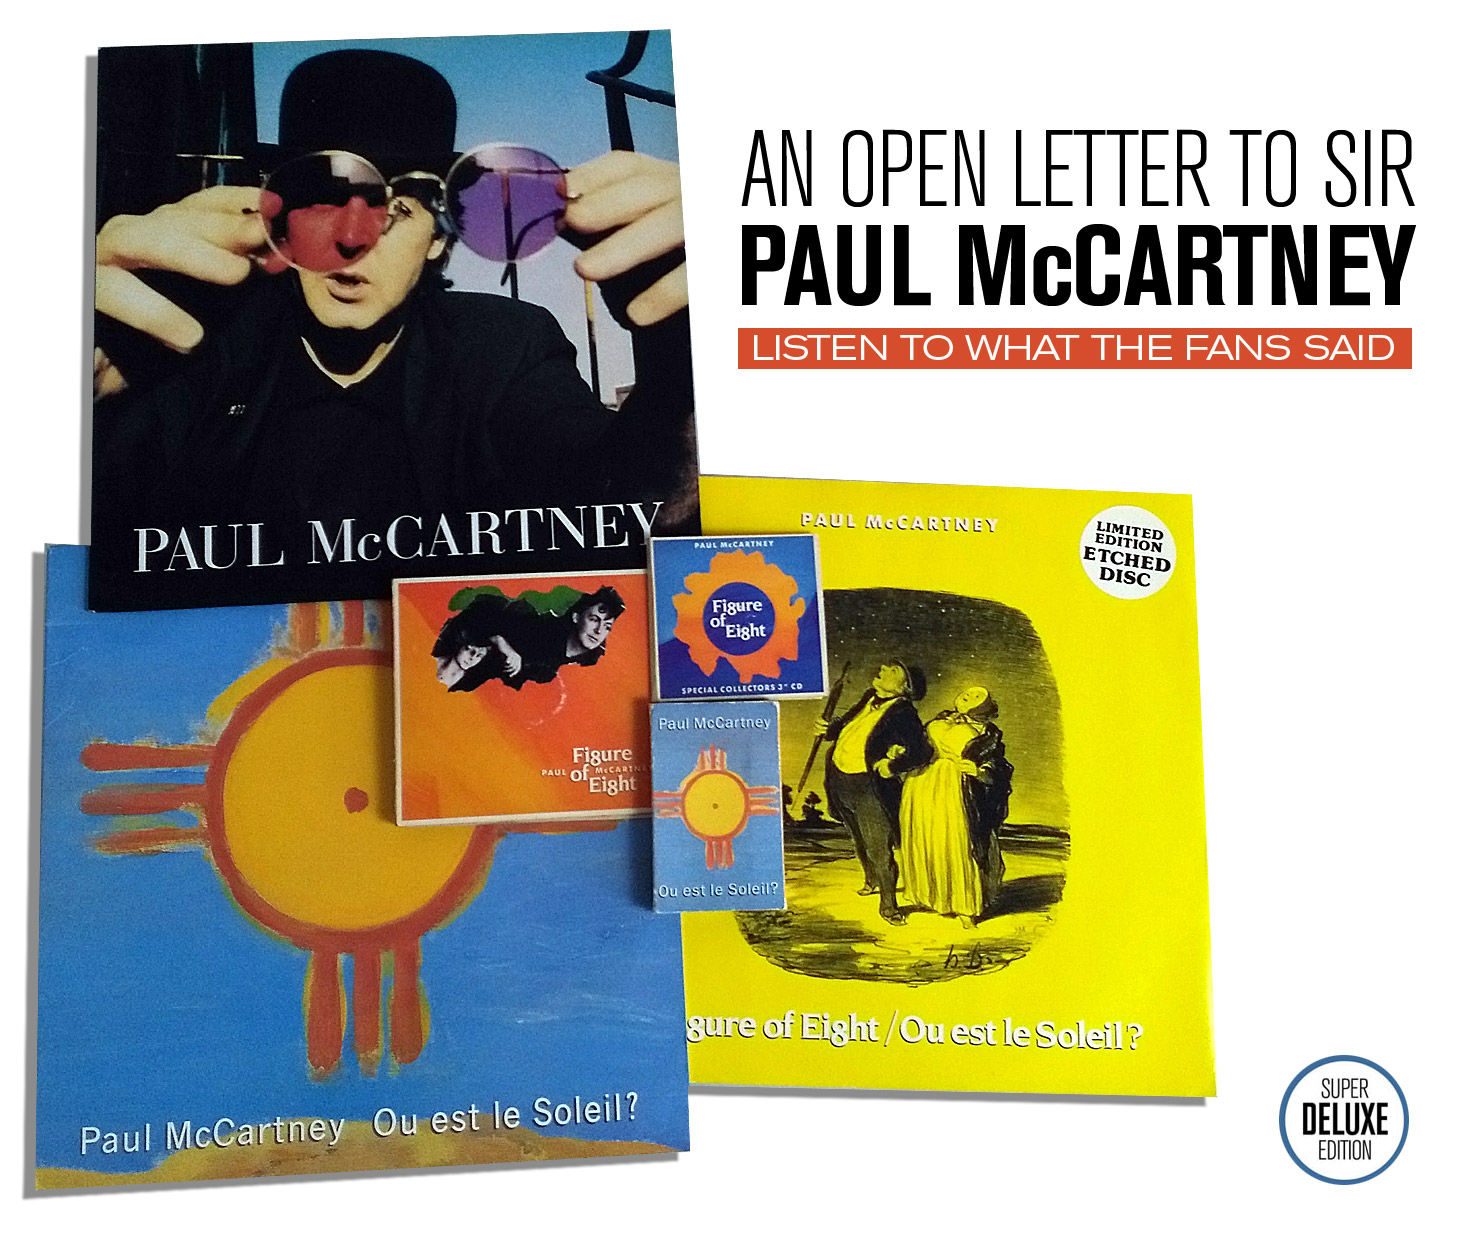 An Open Letter To Sir Paul McCartney / Listen To What The Fans Said